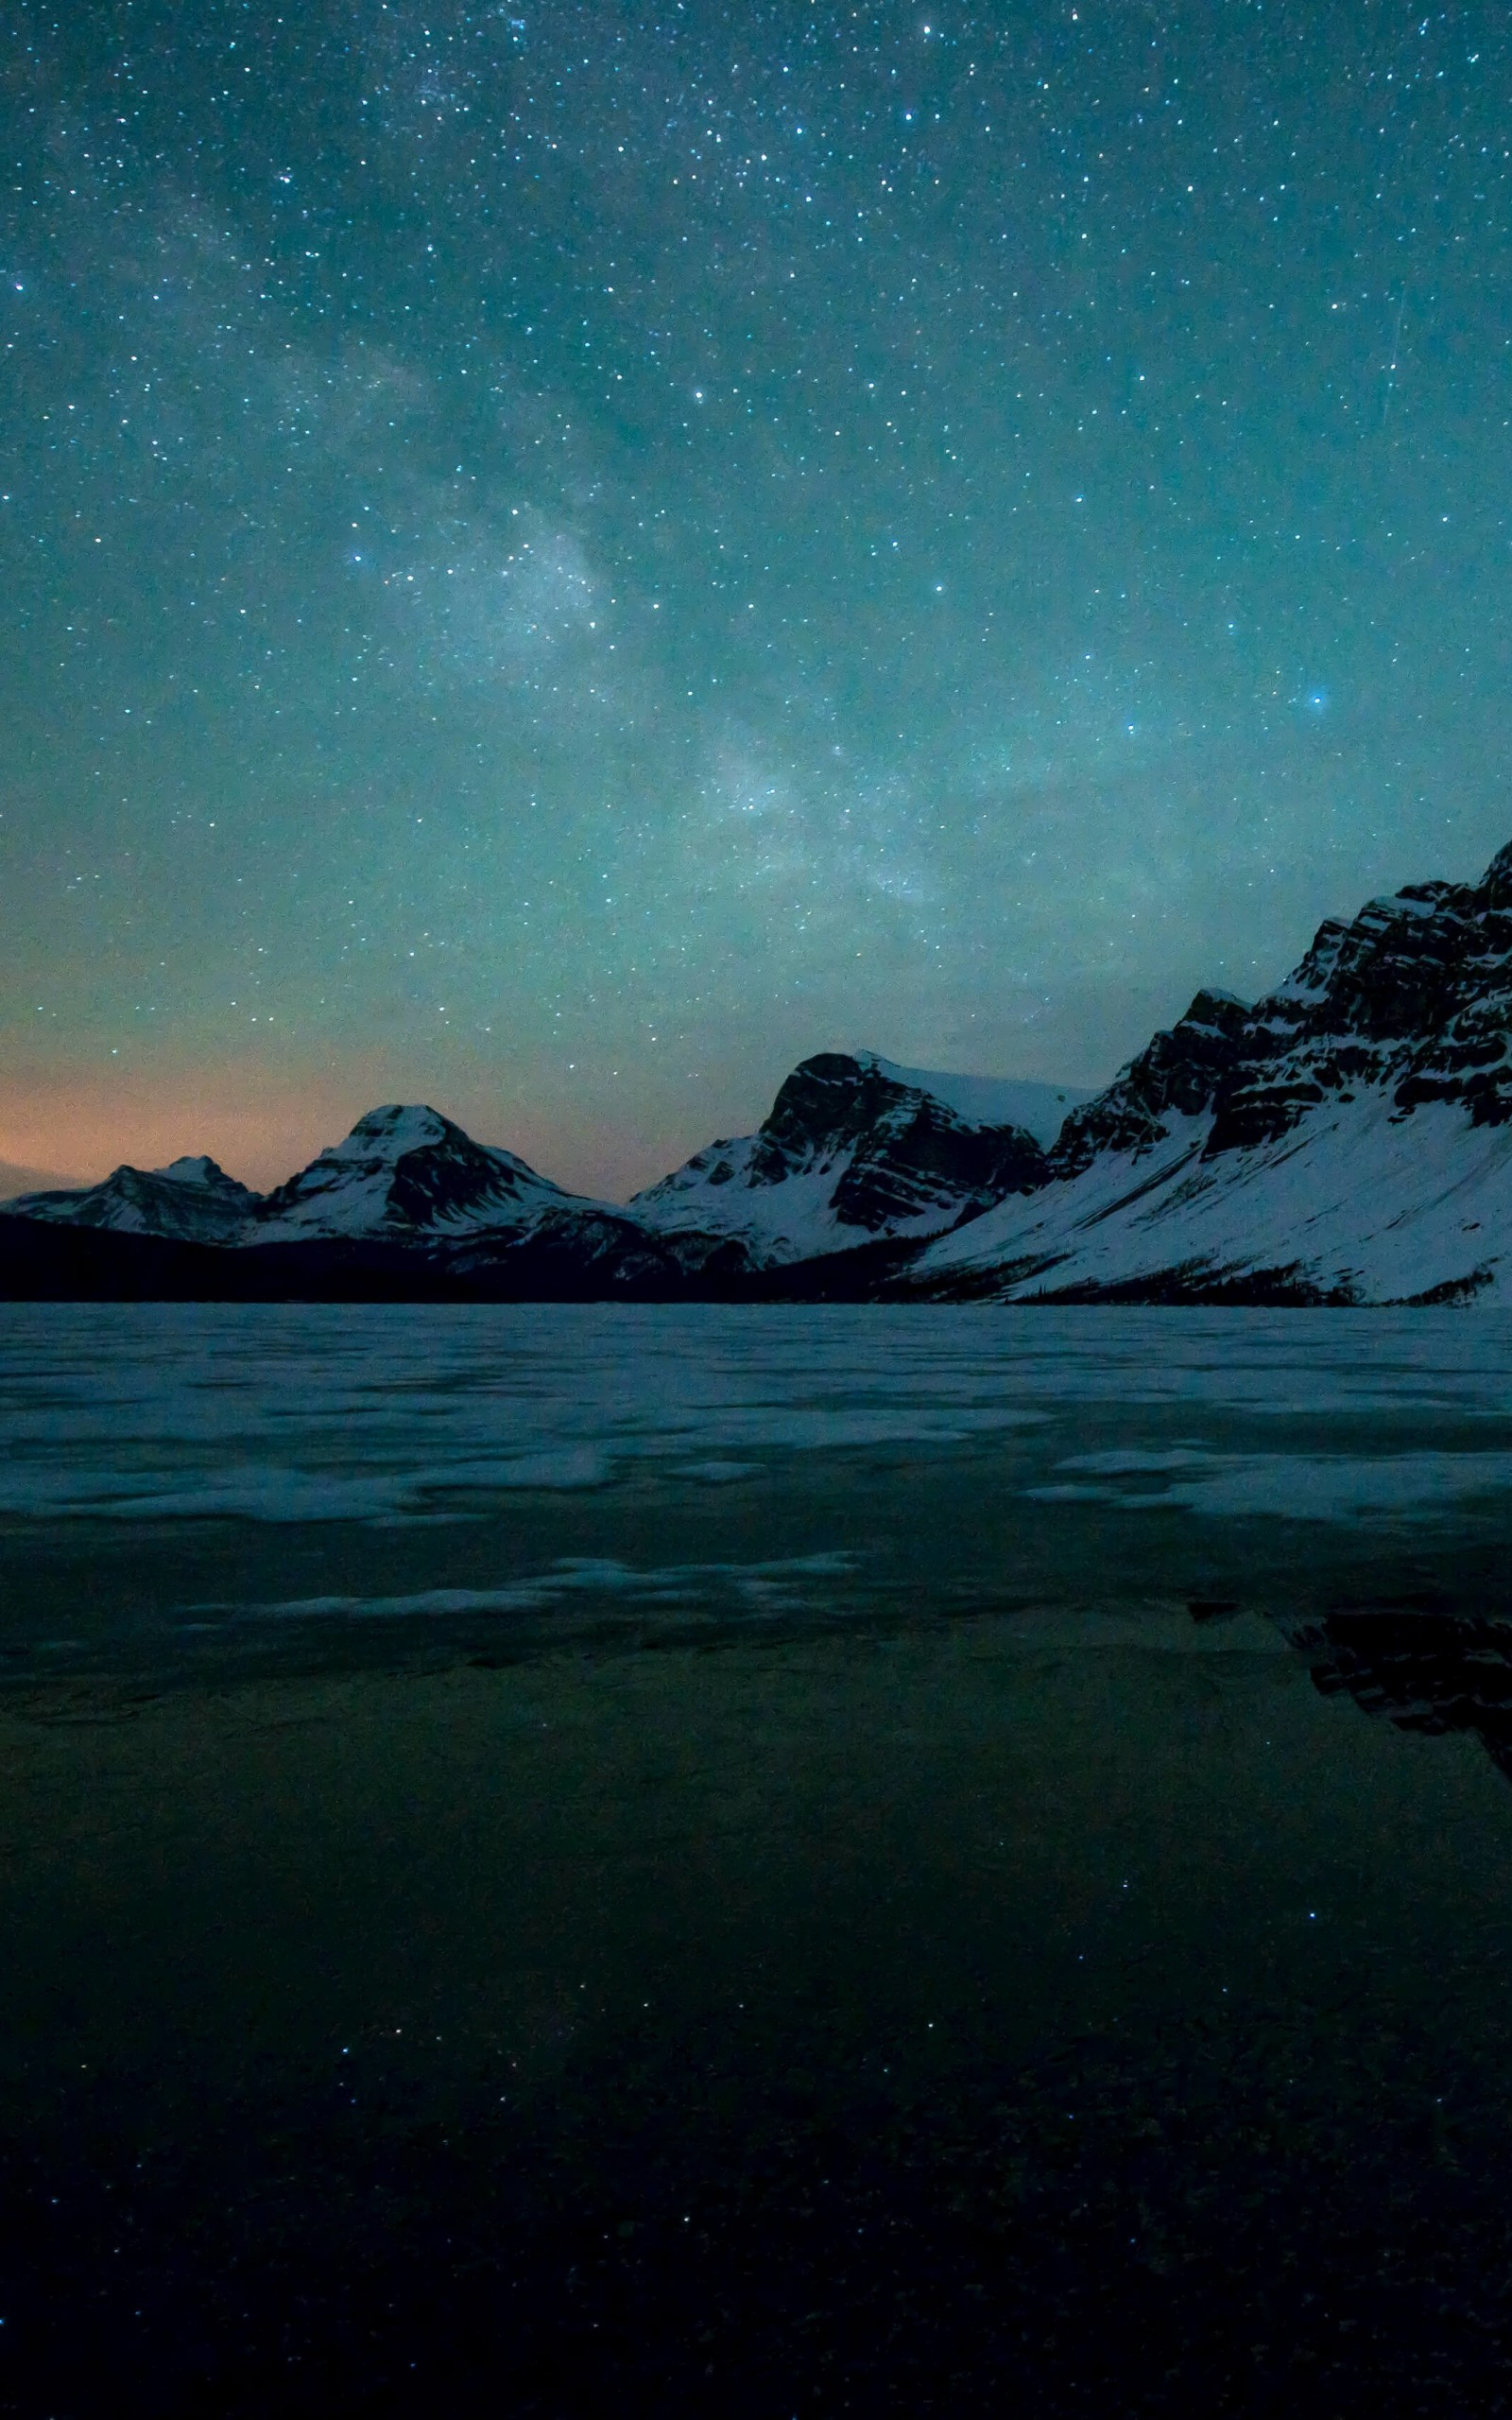 Milky Way over Bow Lake, Alberta, Canada Wallpaper for Amazon Kindle Fire HDX 8.9